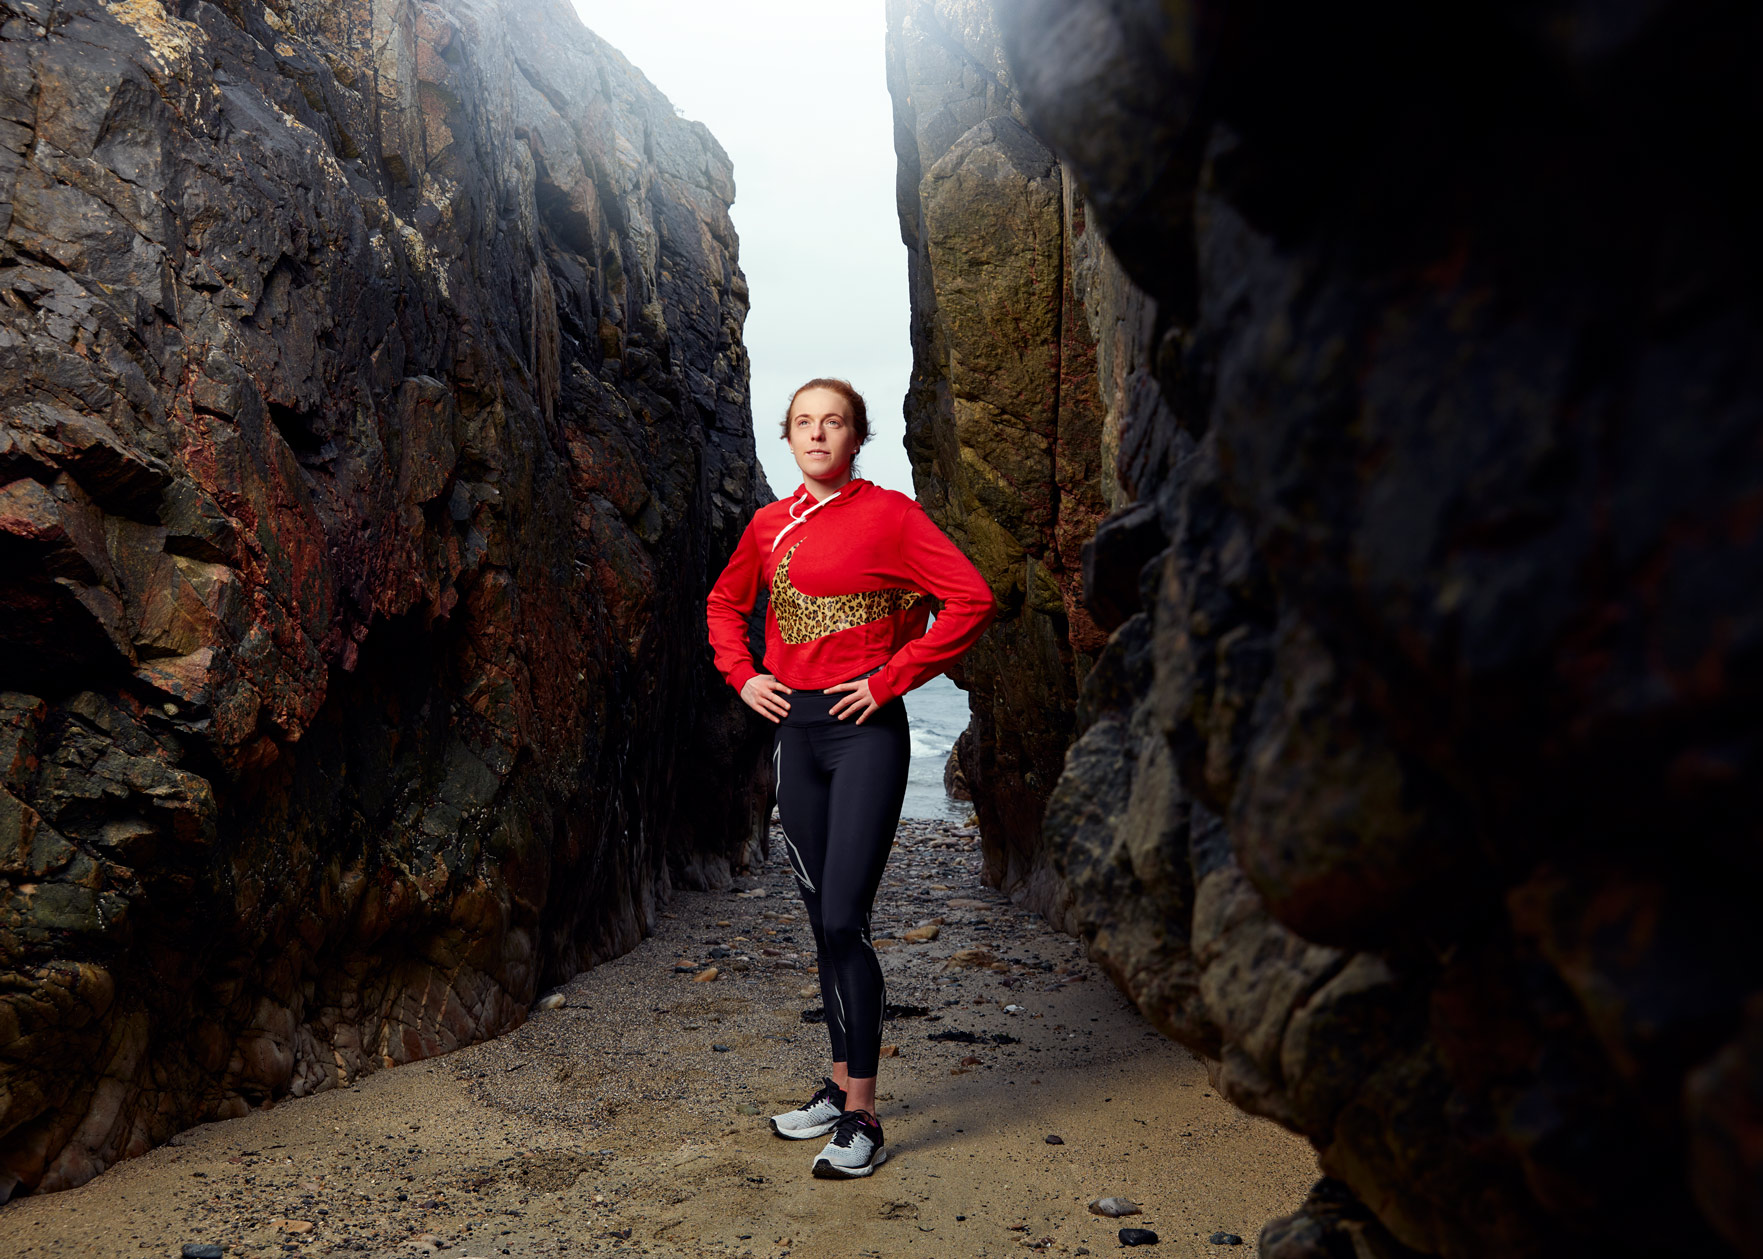 athlete portraits: running is good for the soul